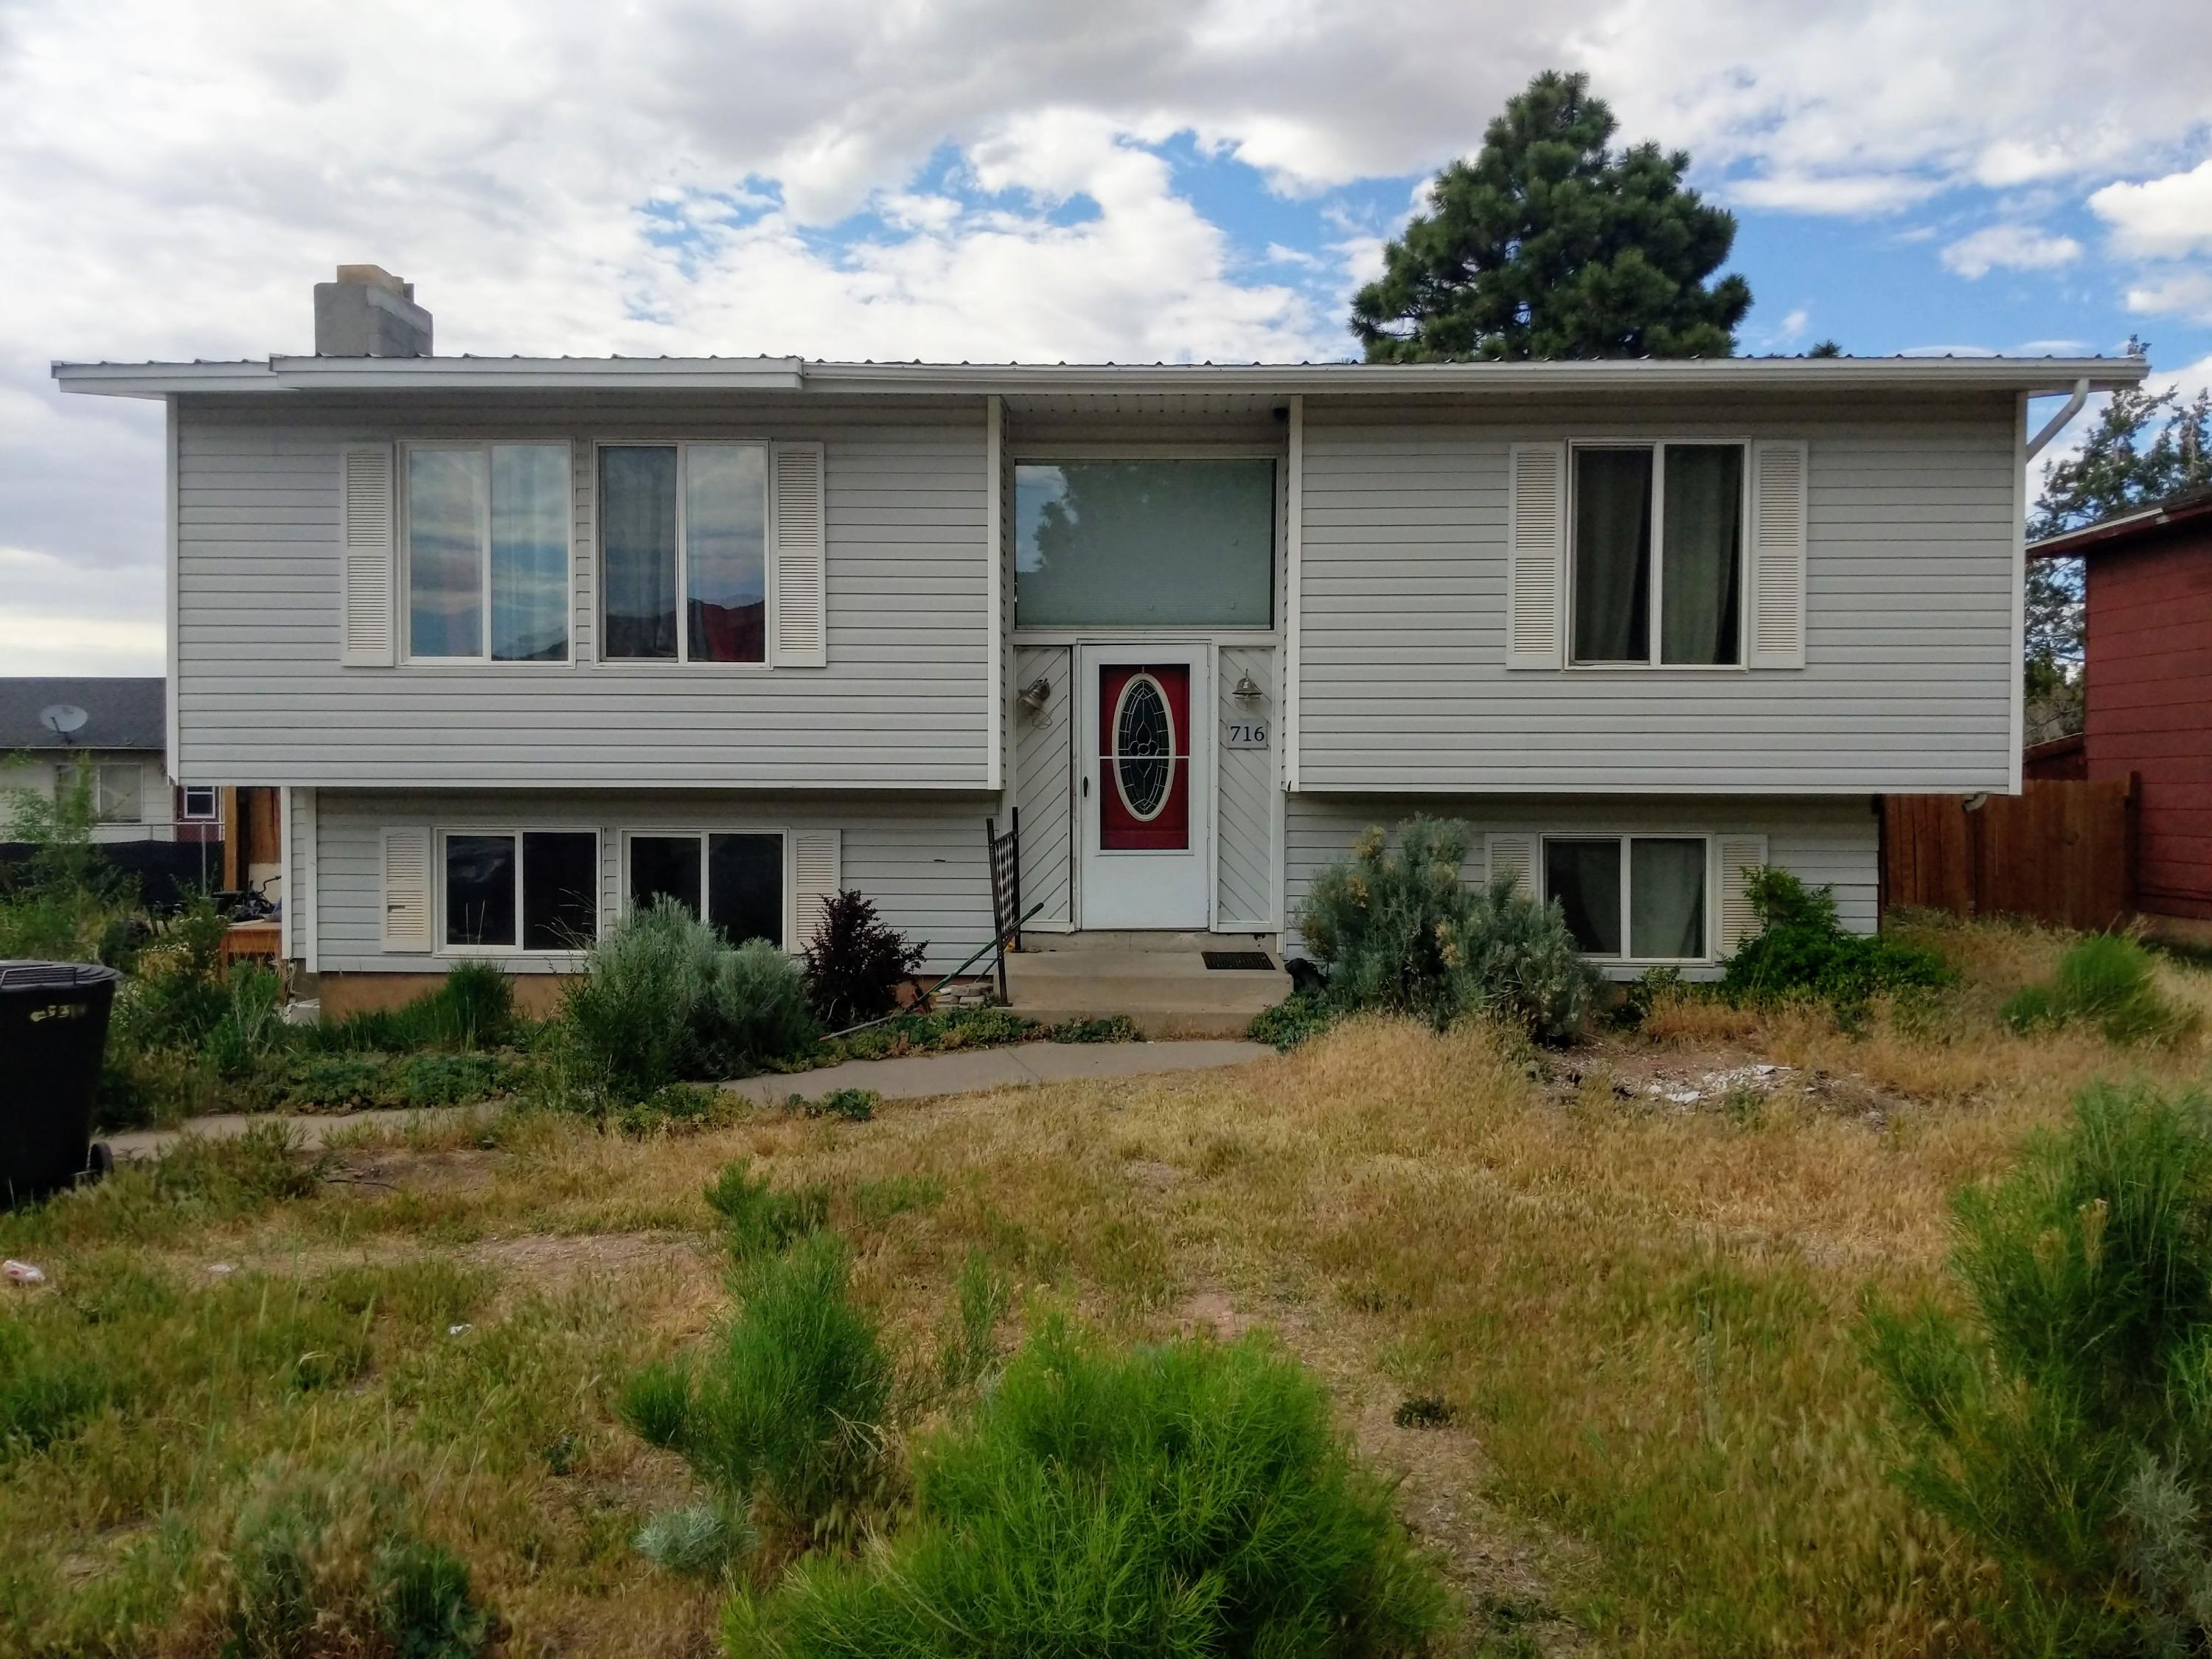 716 W Mountain View Dr, Cedar City Ut 84720